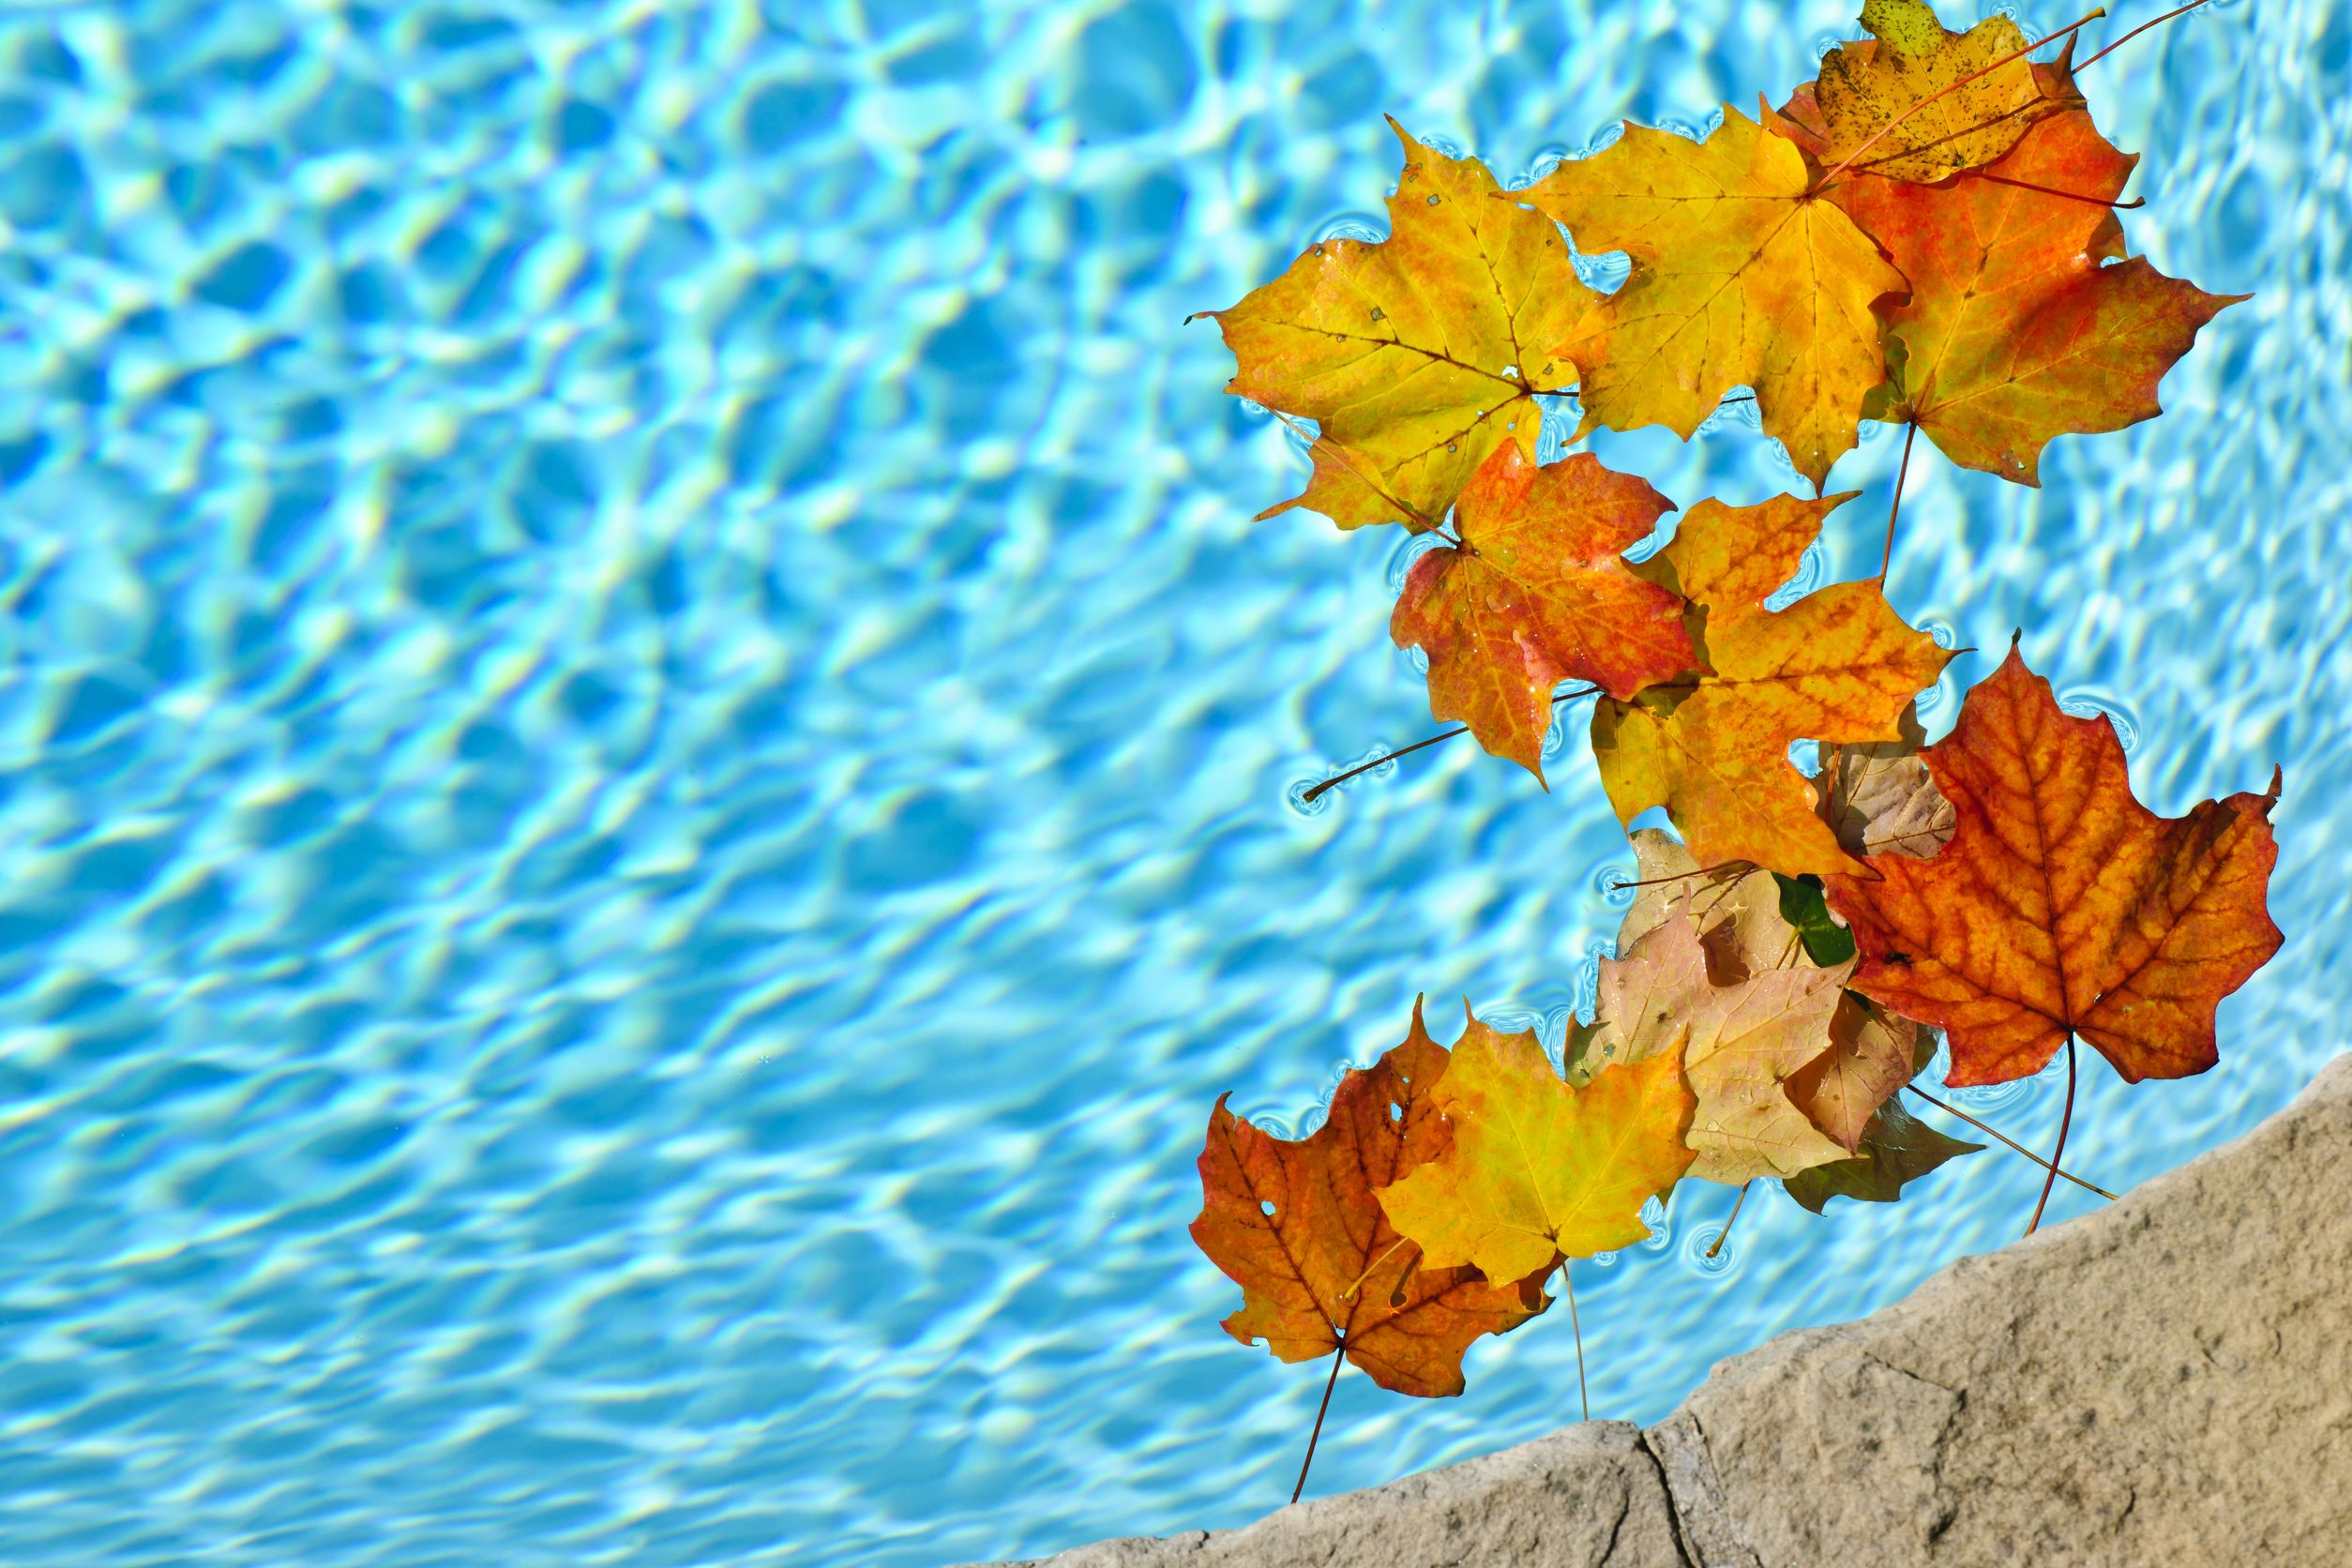 16419292 - fall leaves floating in swimming pool water